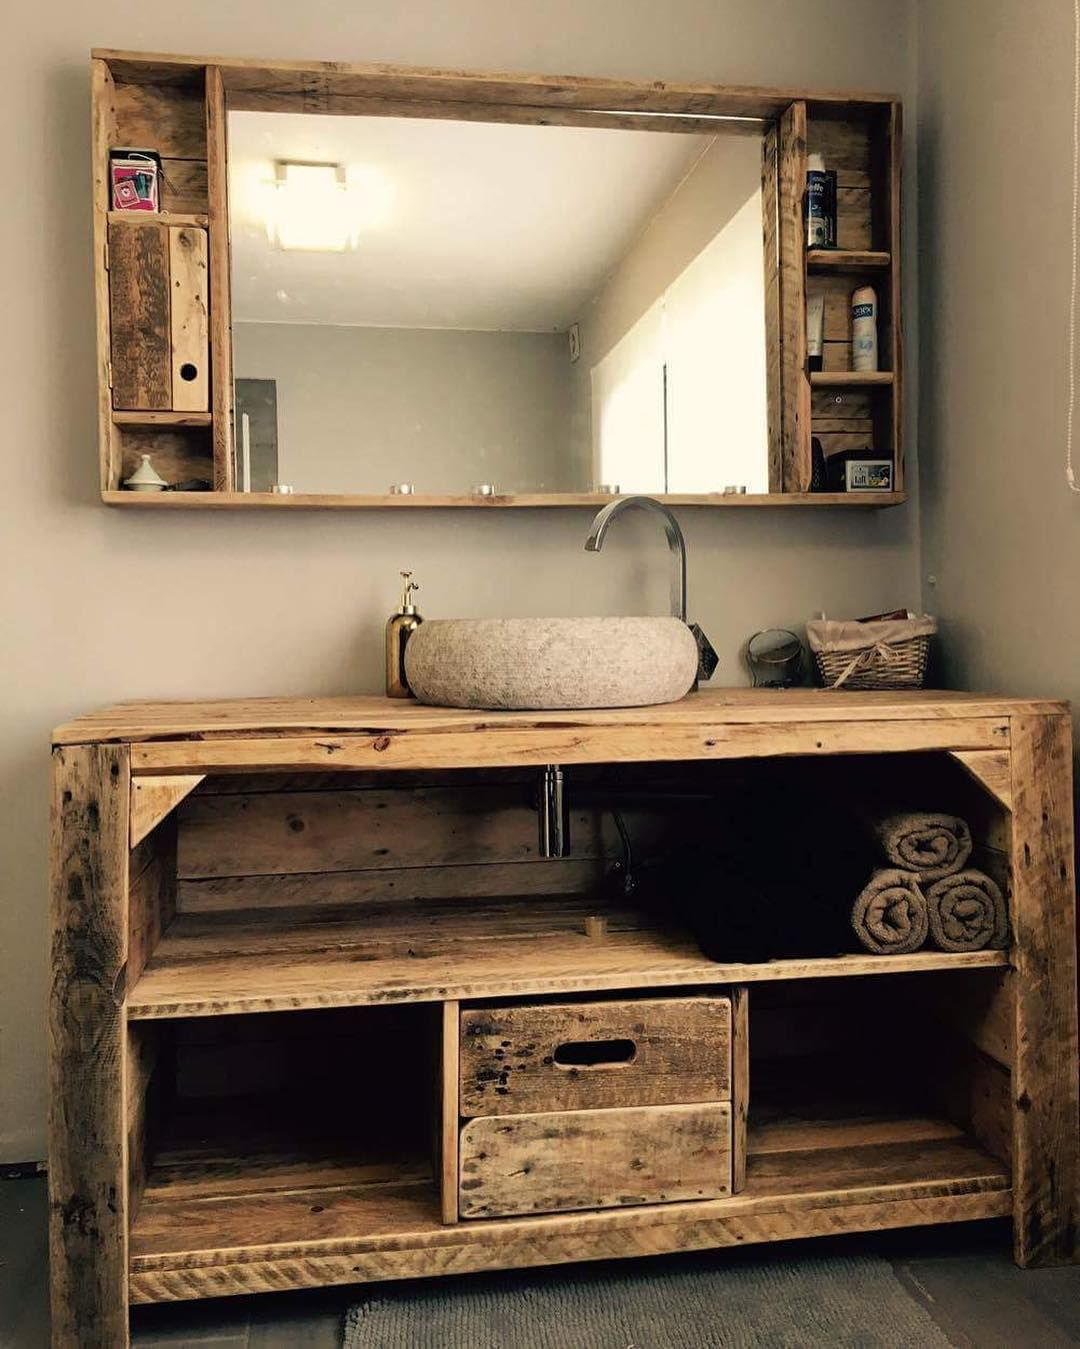 Palette Diy Idee Deco Palette Idee Meuble Palette Deco Bois De Palette Deco Avec Palette De B Rustic Furniture Design Pallet Bathroom Pallet Projects Furniture